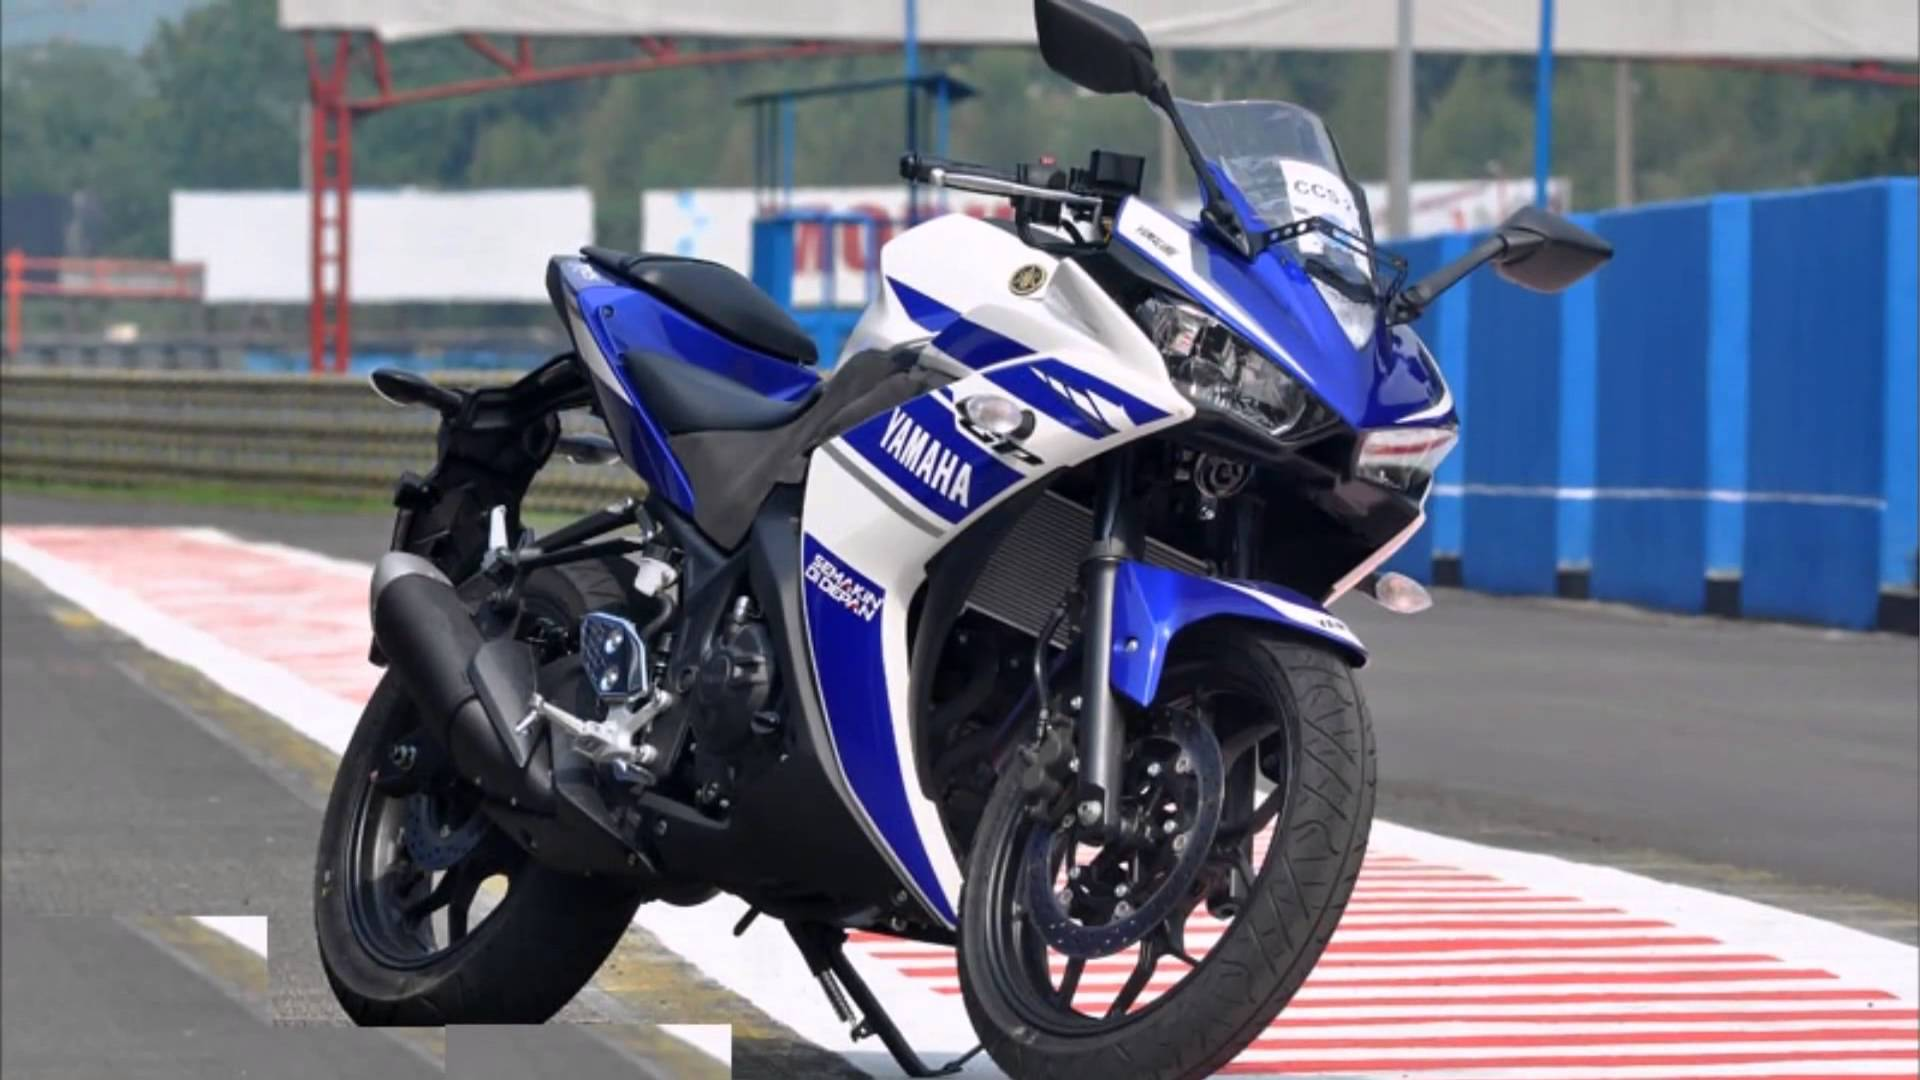 Yamaha expected to launch new sportsbike in pakistan soon for Yamaha r9 motorcycle